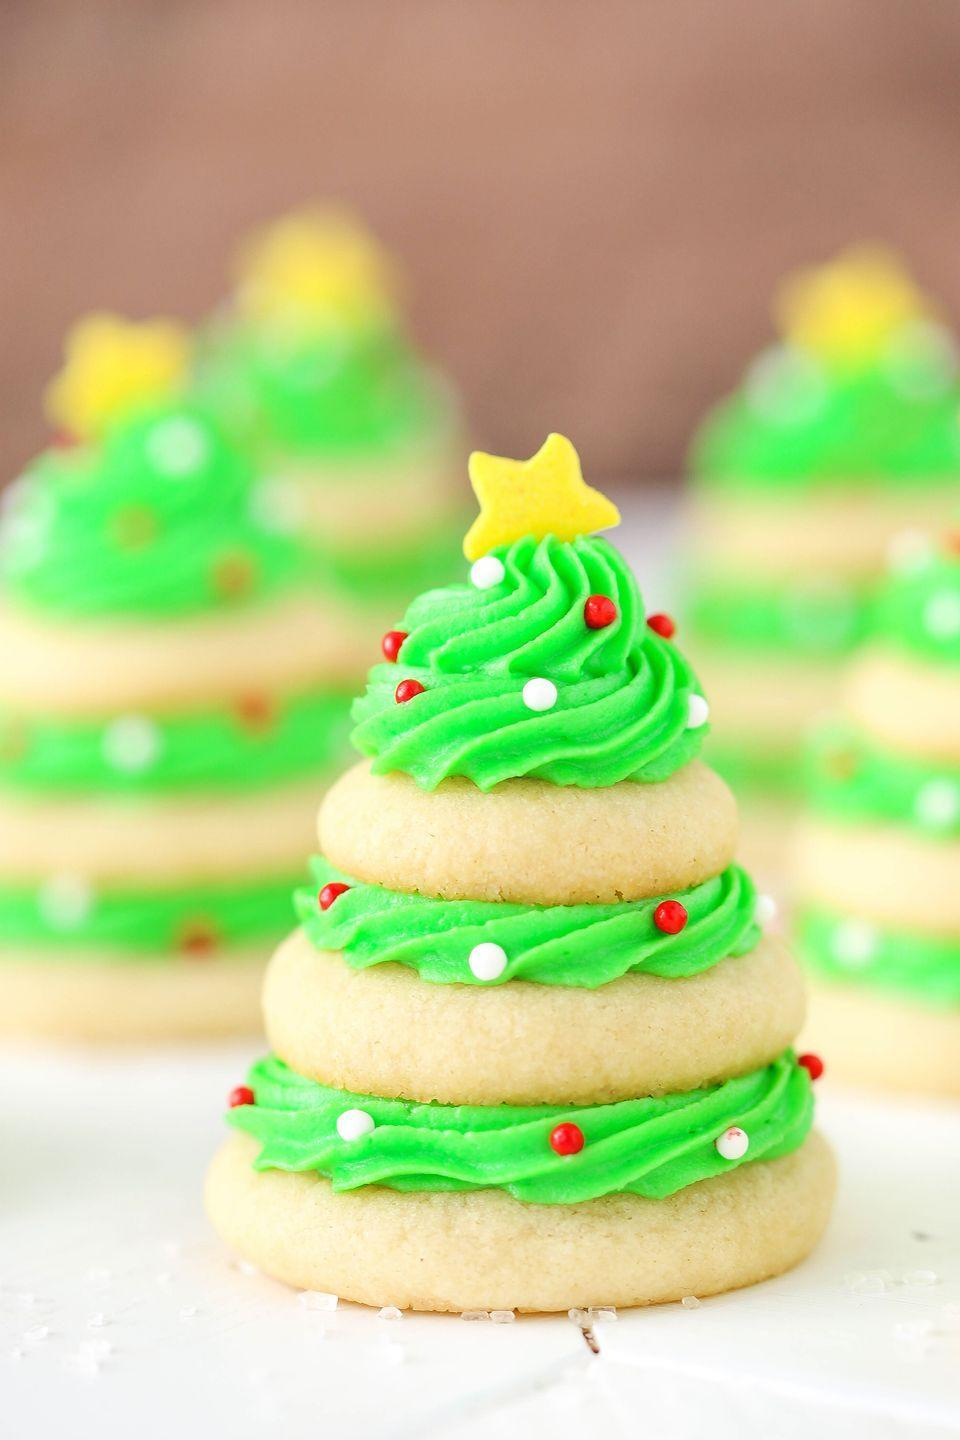 "<p>Ask yourself, would you rather decorate a real tree, or a sugar cookie Christmas tree?</p><p>Get the recipe from <a href=""https://www.delish.com/cooking/recipe-ideas/recipes/a50445/christmas-tree-cookie-stacks/"" rel=""nofollow noopener"" target=""_blank"" data-ylk=""slk:Delish"" class=""link rapid-noclick-resp"">Delish</a>.</p>"